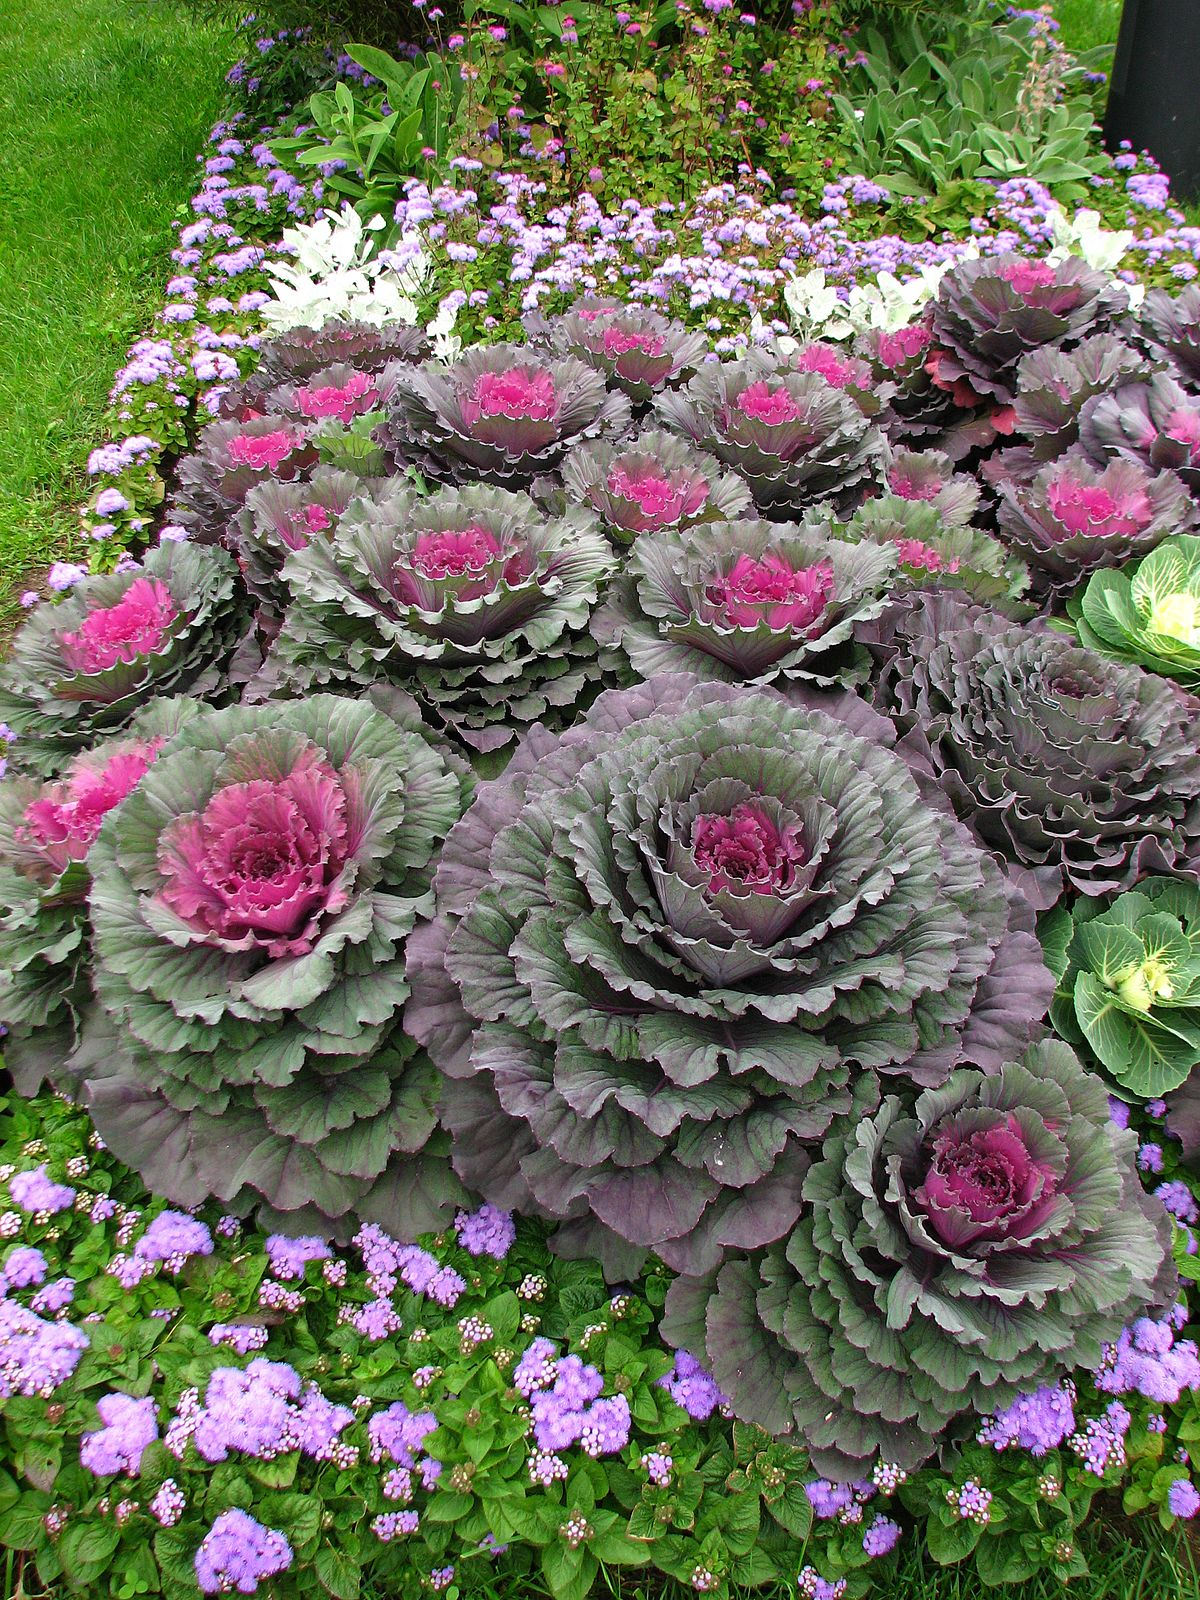 Brassica oleracea var acephala wiktionary for Best flowers for flower bed